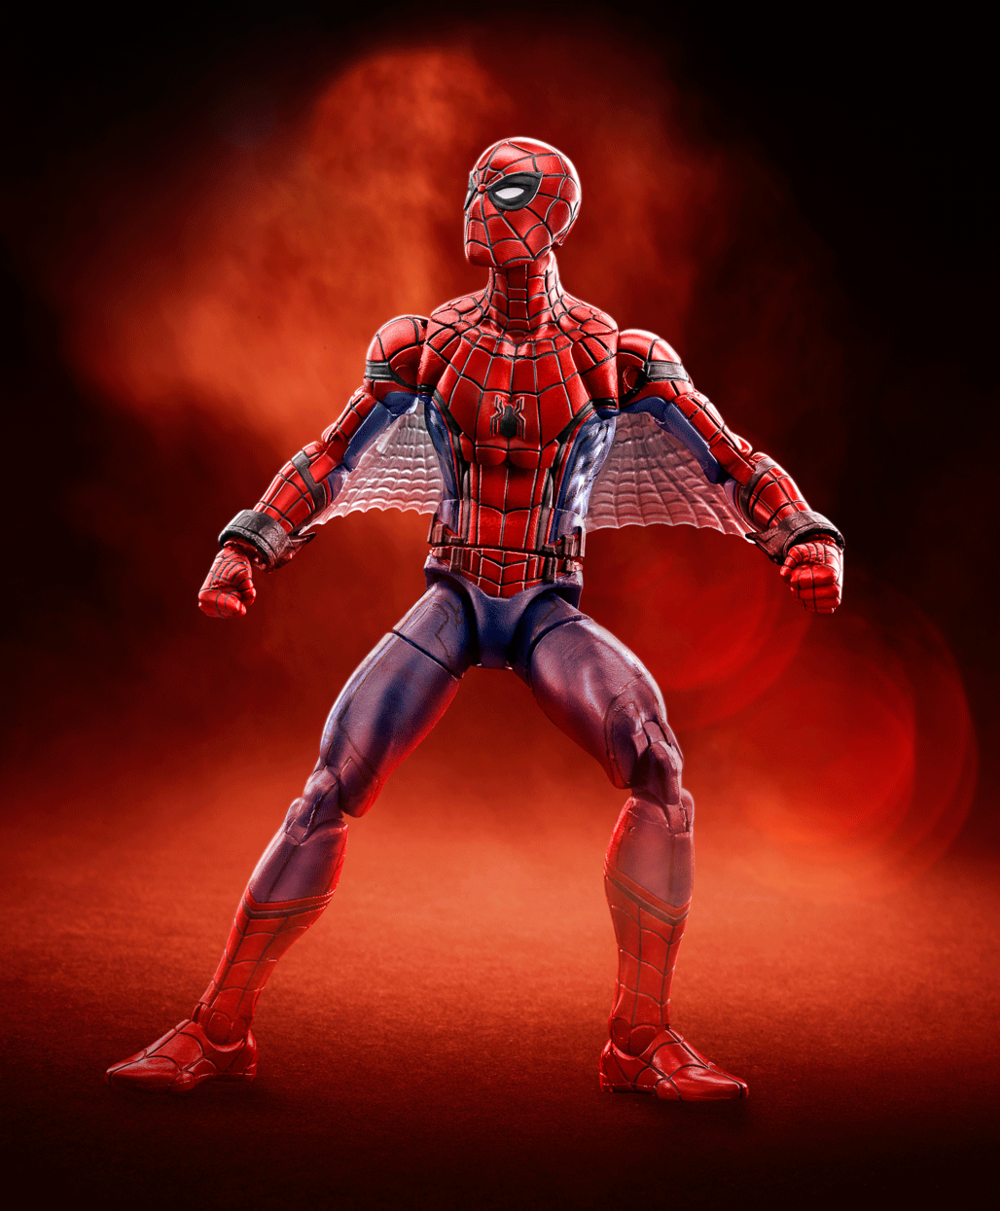 check-out-tony-starks-ultimate-iron-man-armor-from-spider-man-homecoming7